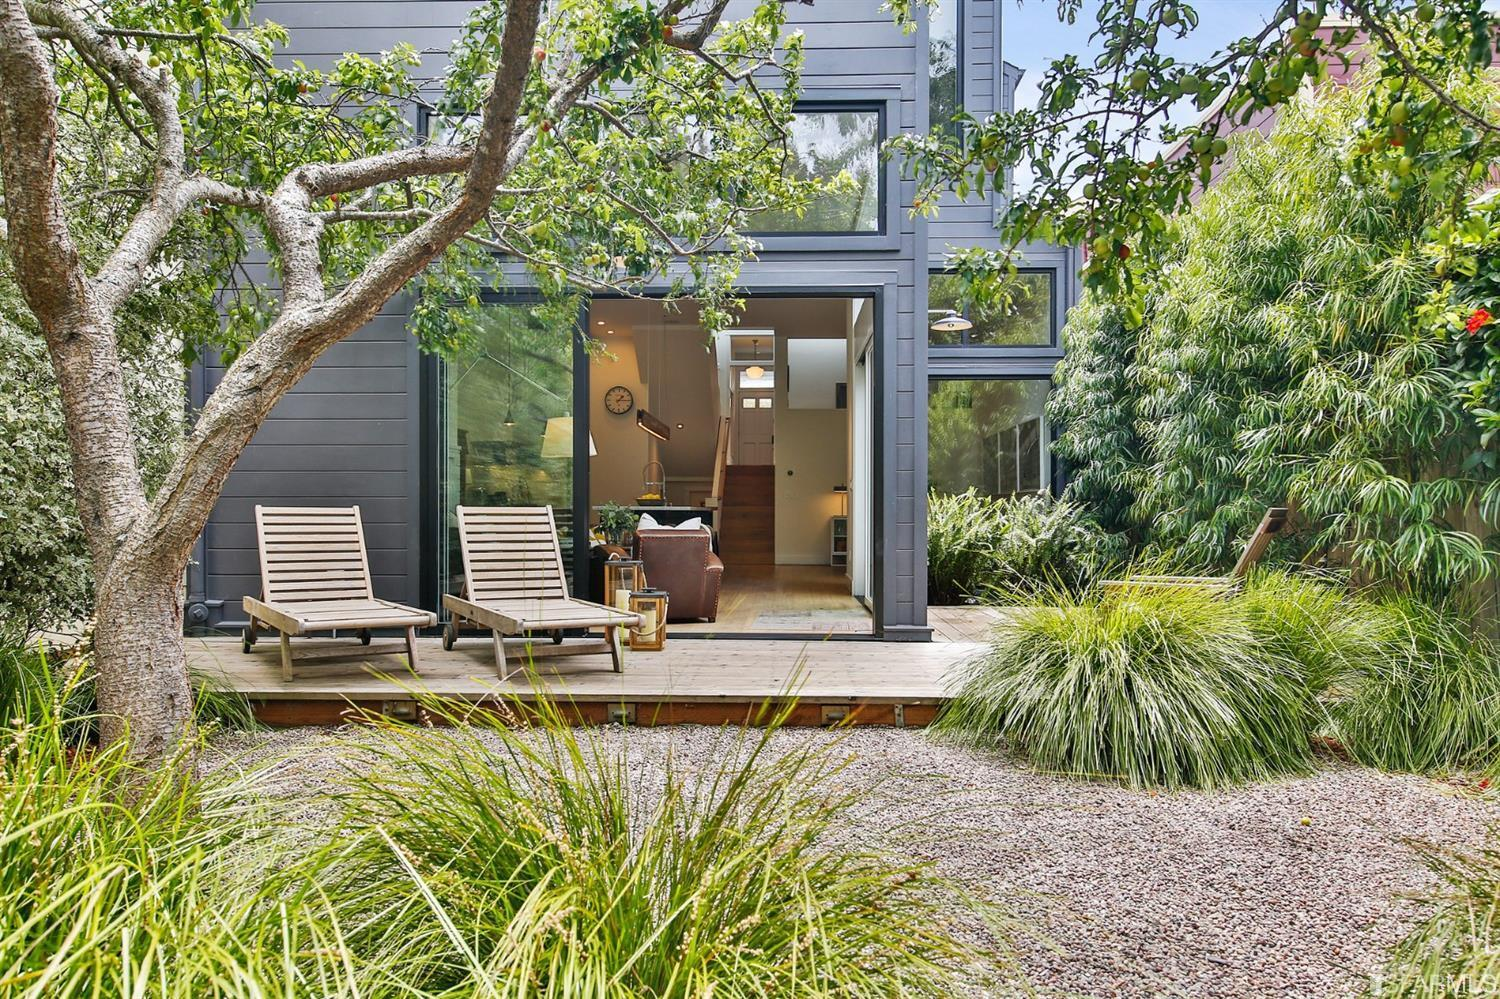 Two lounge chairs on outdoor patio surrounded by greenery